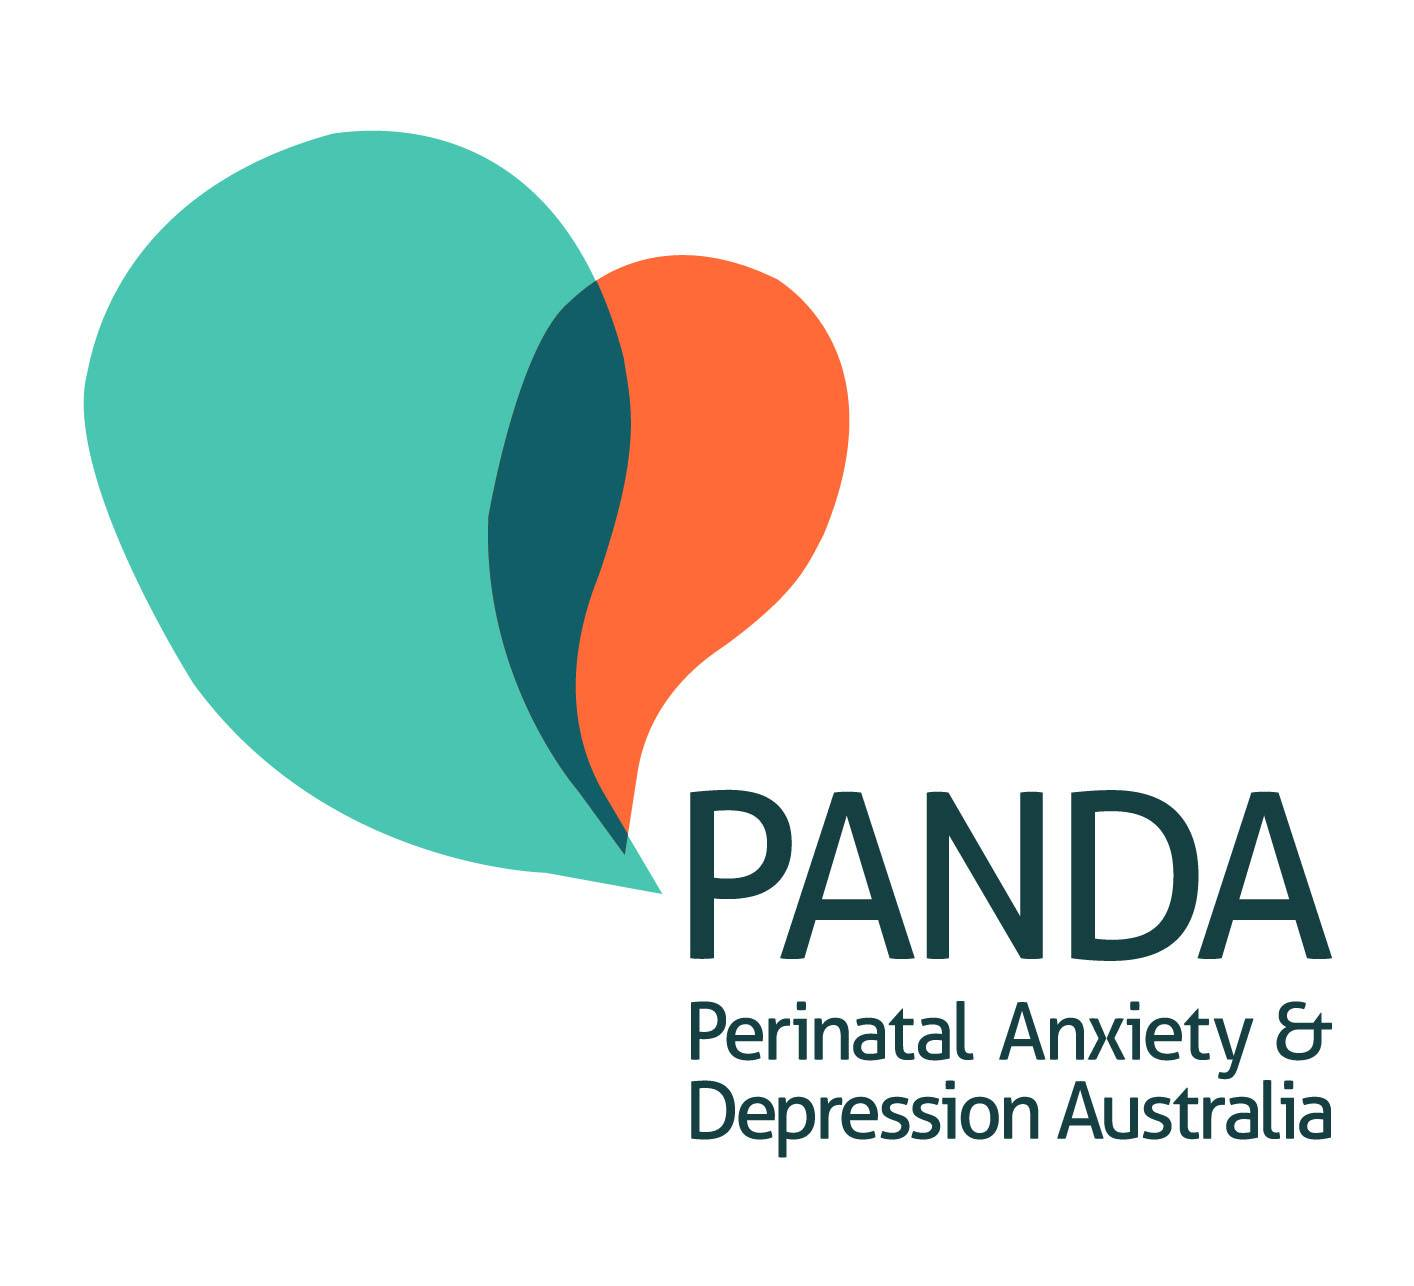 PANDA Perinatal Anxiety & Depression Australia